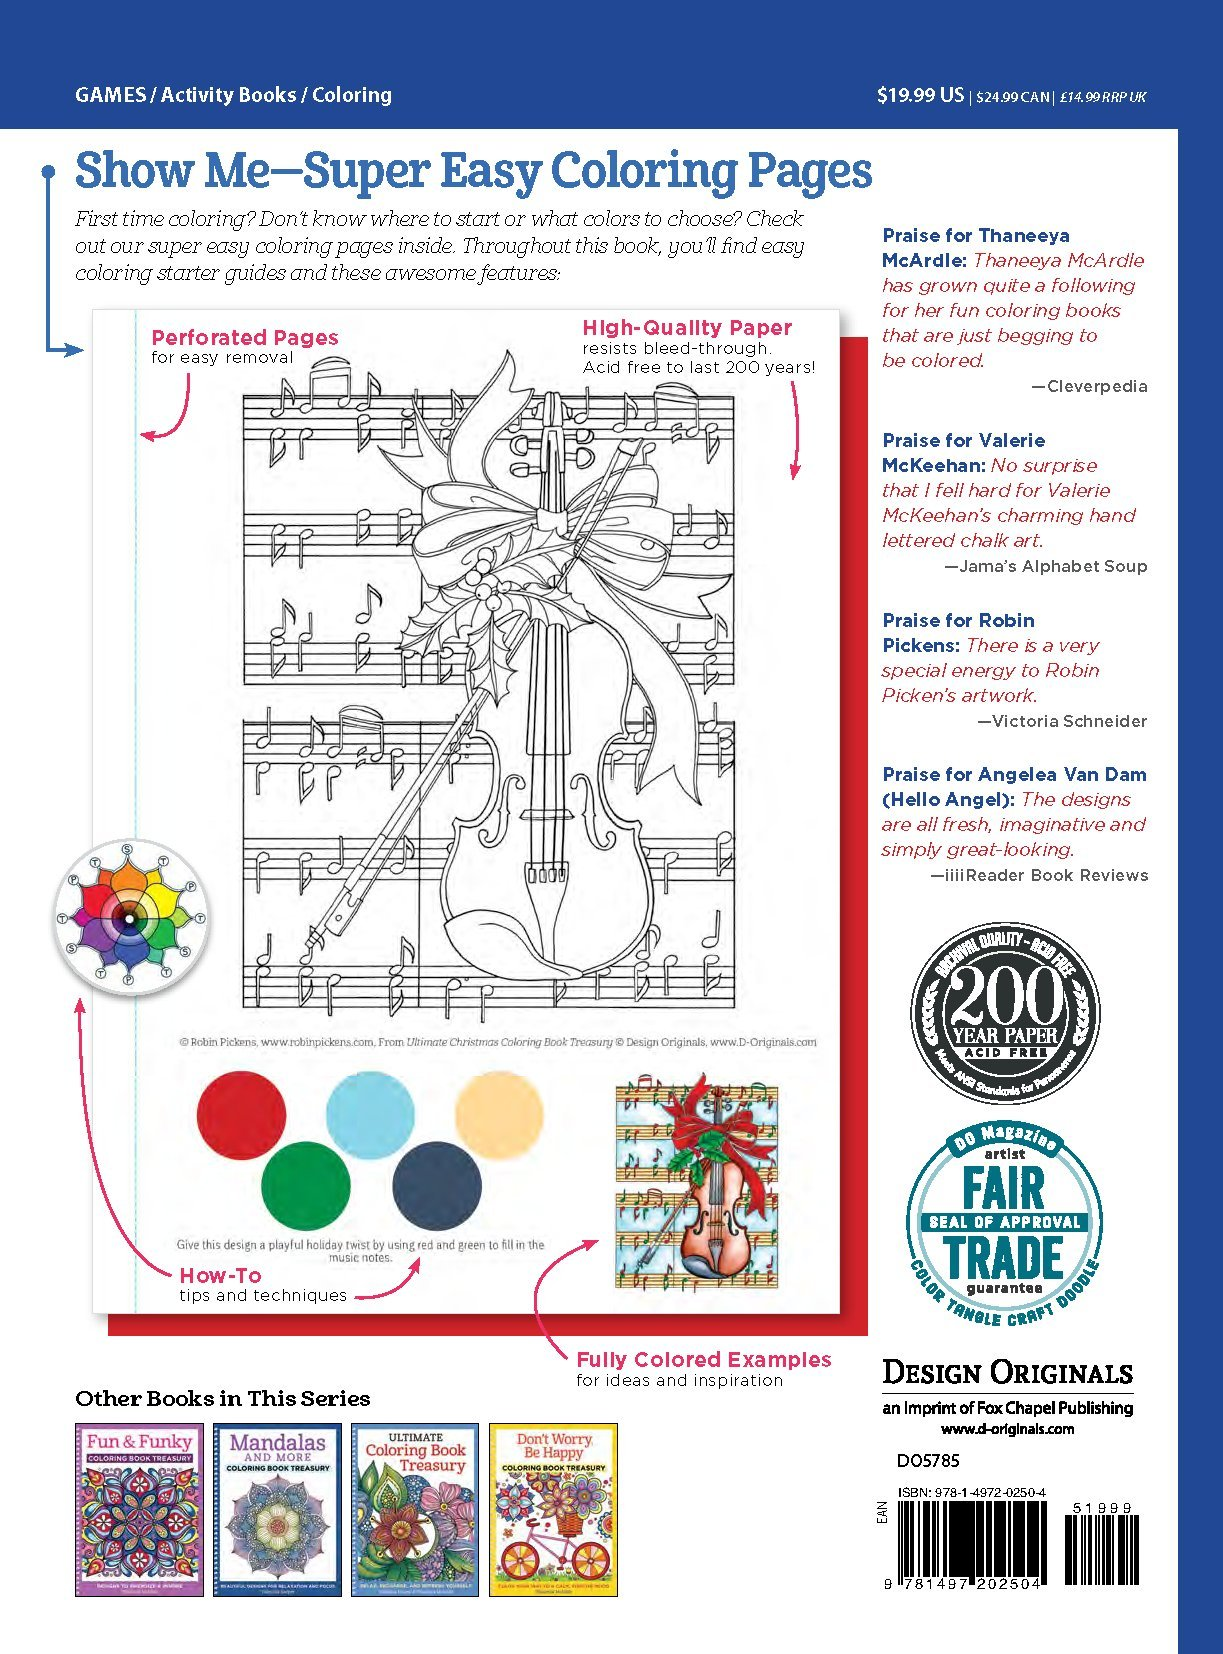 amazoncom ultimate christmas coloring book treasury color the season merry bright design originals 208 pages of one side only holiday designs in